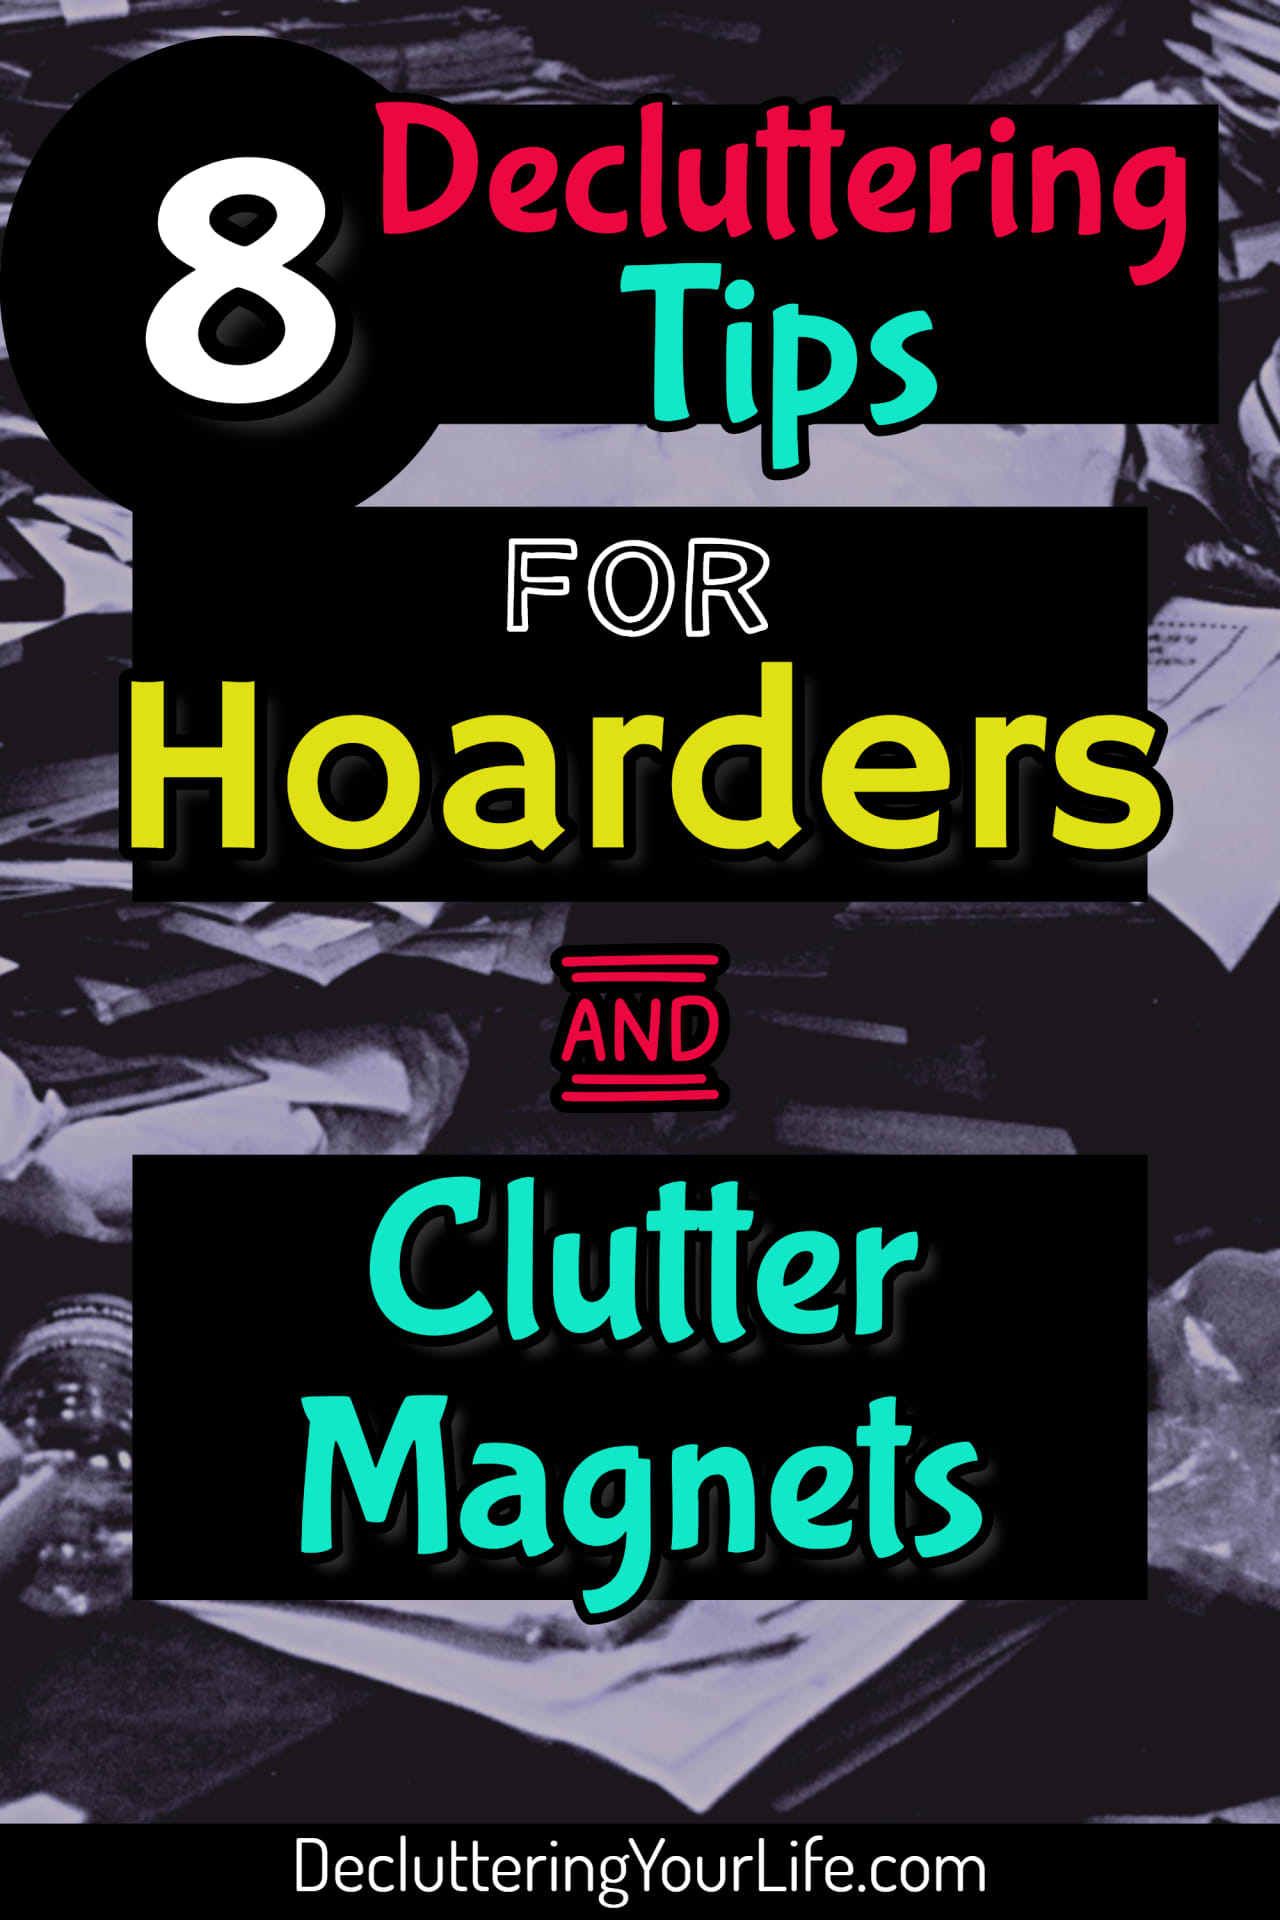 "Decluttering ideas - How to declutter and organize when you're overwhelmed with too much STUFF!  Many hoarders, packrats or ""clutter magnets"" feel they are drowning in STUFF in their messy house.  Here's 8 cleaning and organizing tips for hoarders to put in your printable household notebook.  These home organization hacks & speed cleaning tips / checklists DO work - even if your clutter is out of control."